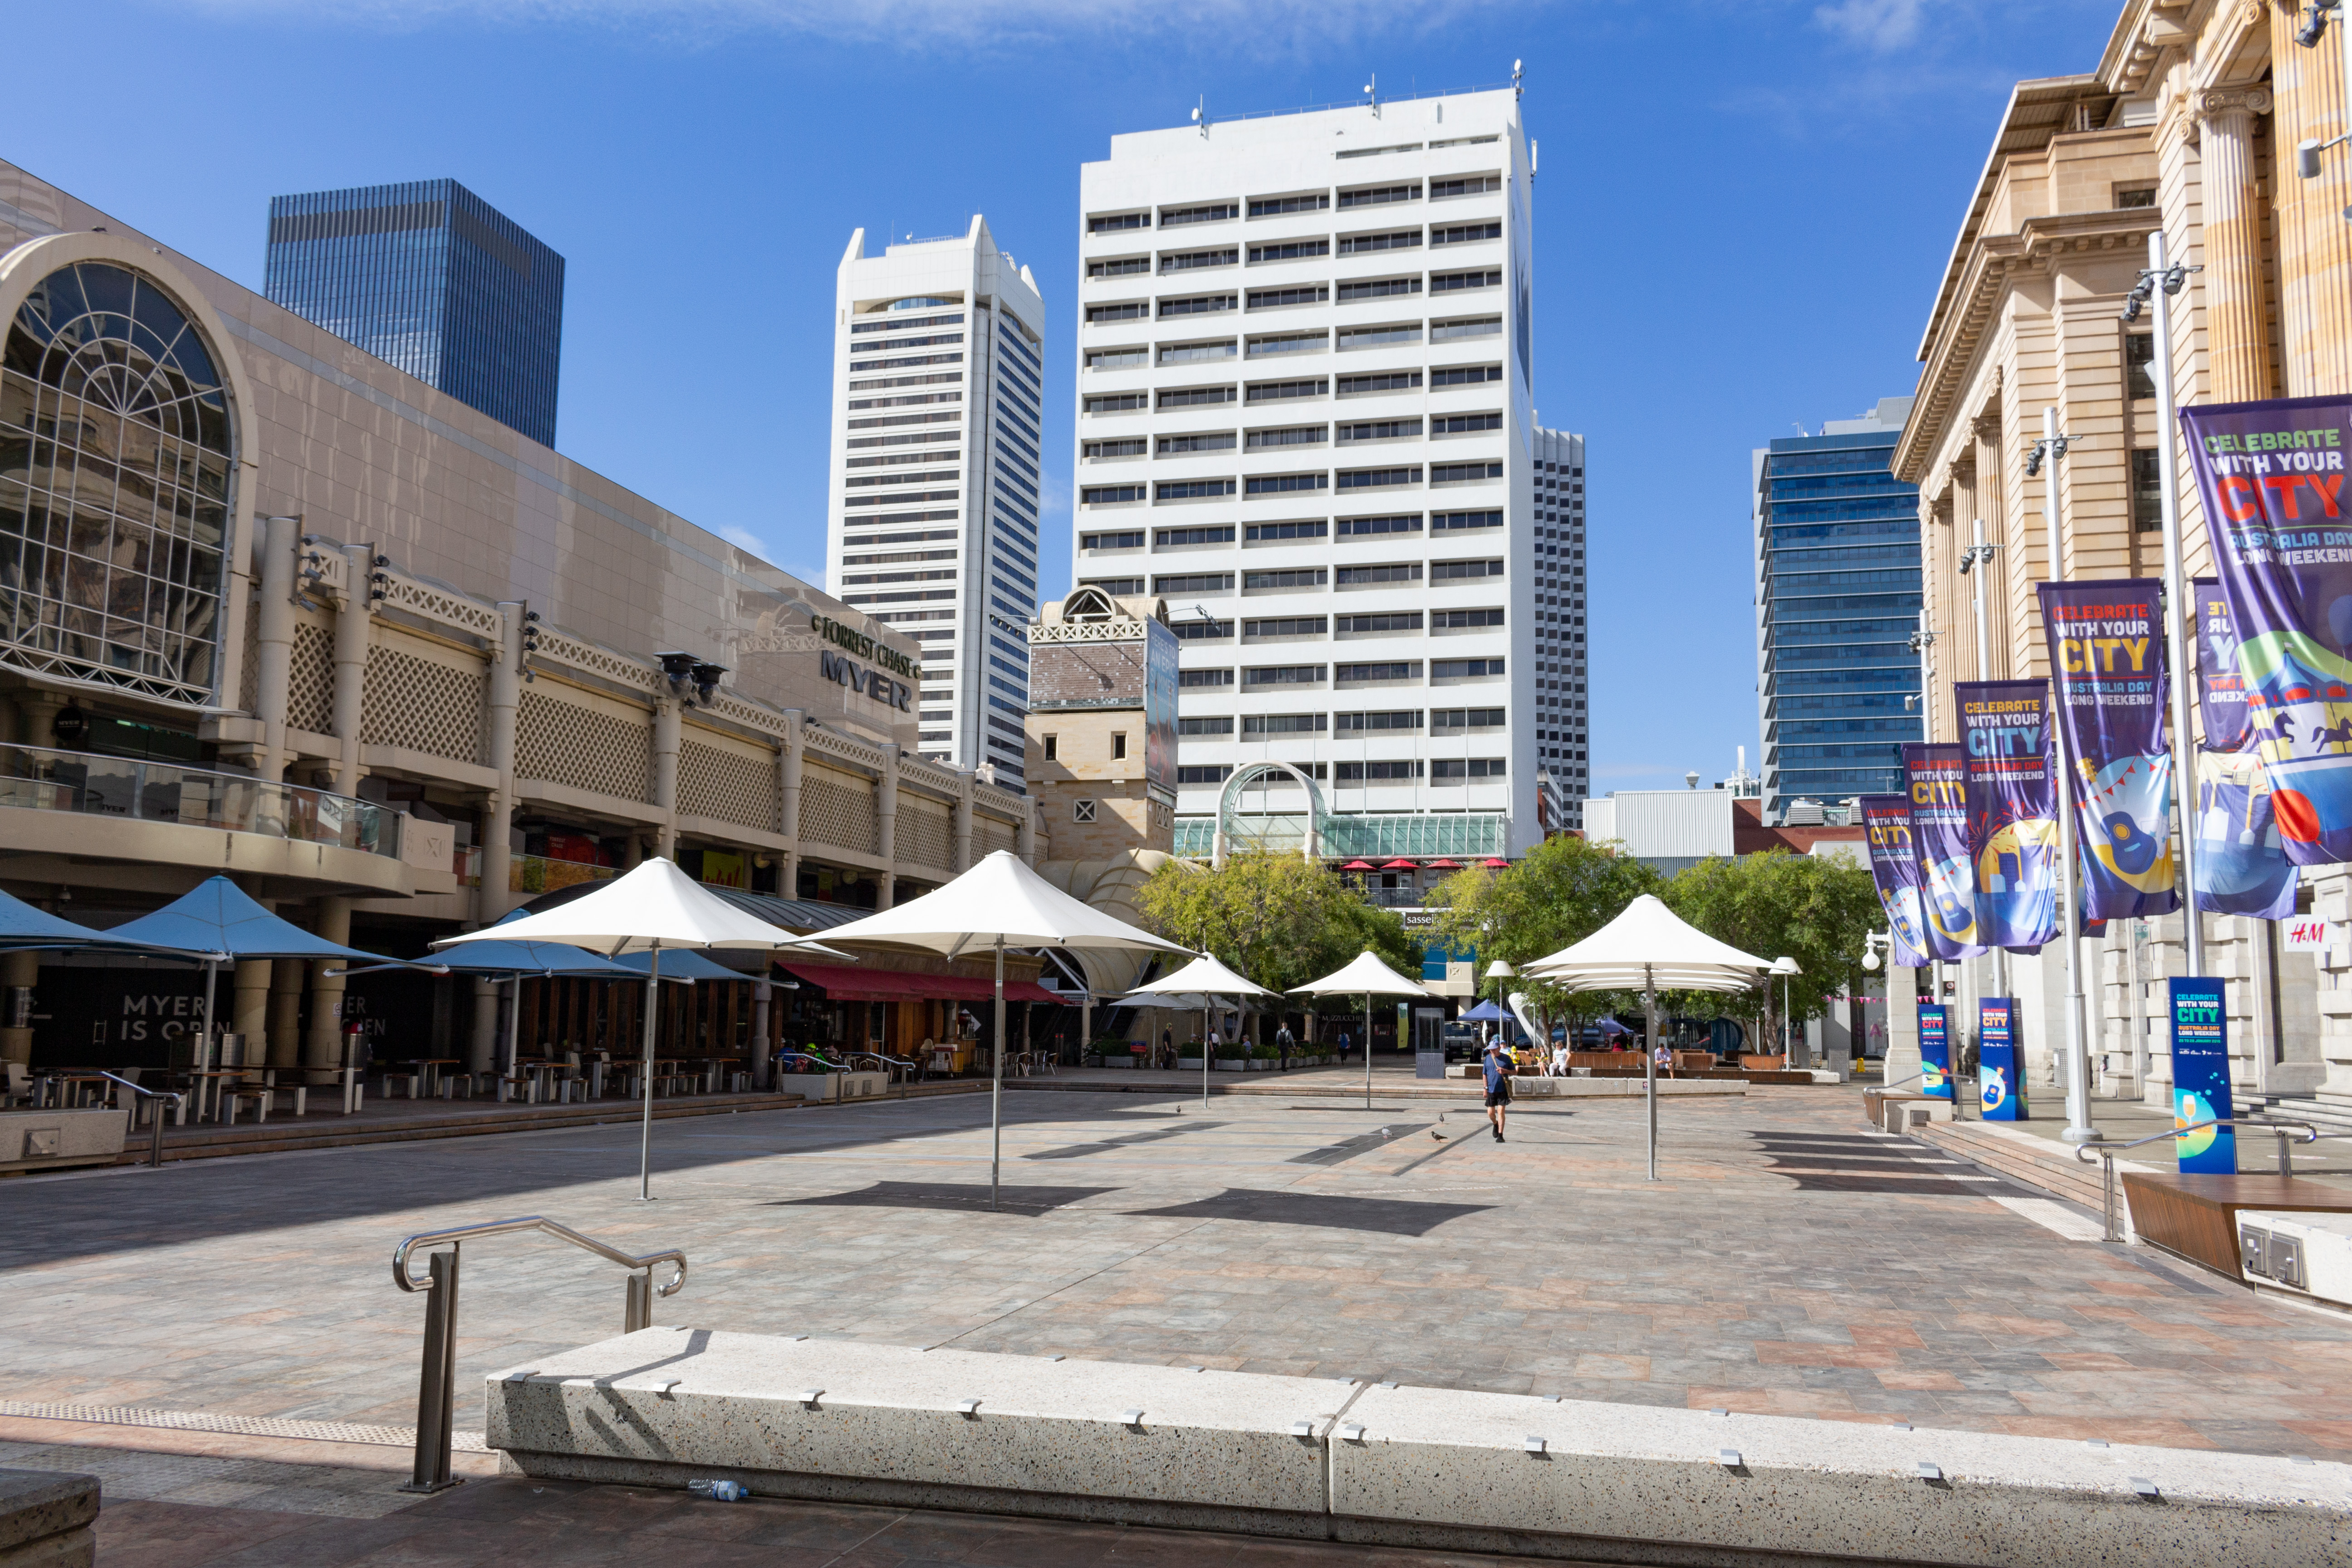 File:Forrest Place, January 2018 06.jpg - Wikimedia Commons